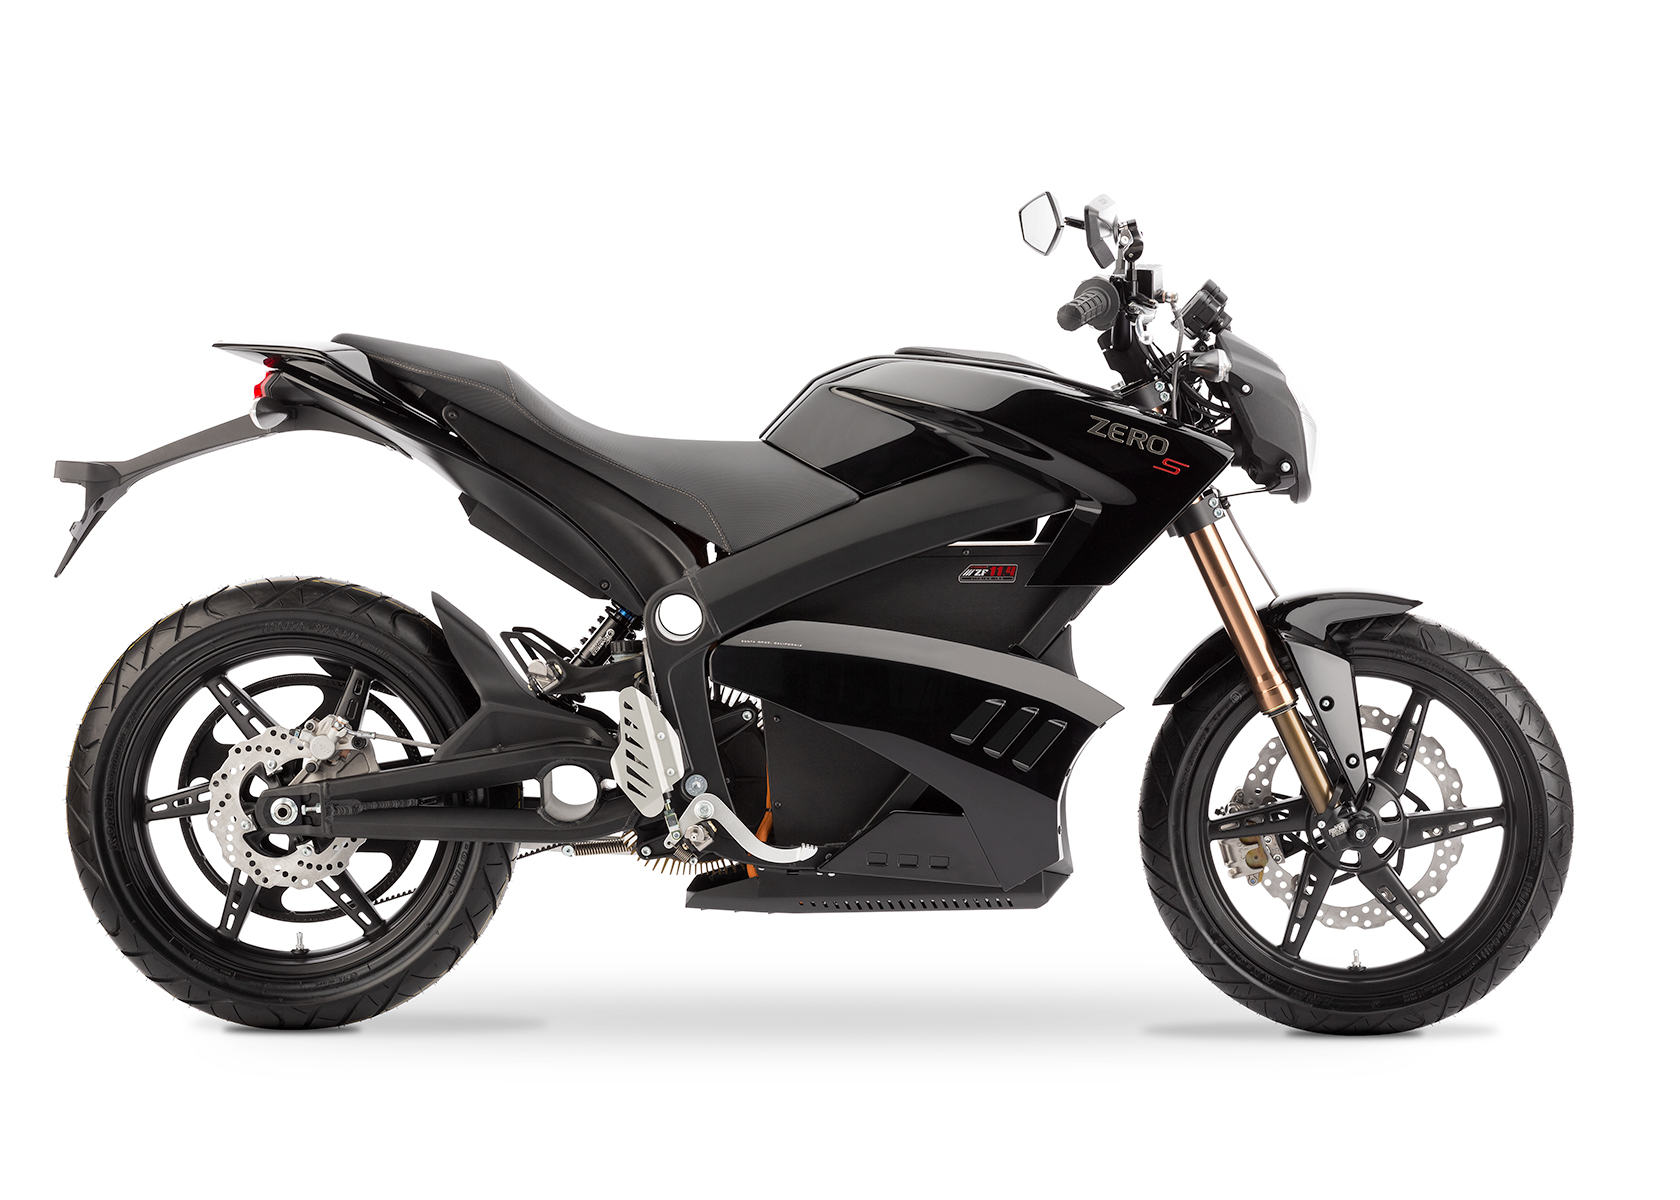 2013 Zero S Electric Motorcycle: Black Profile Right, White Background